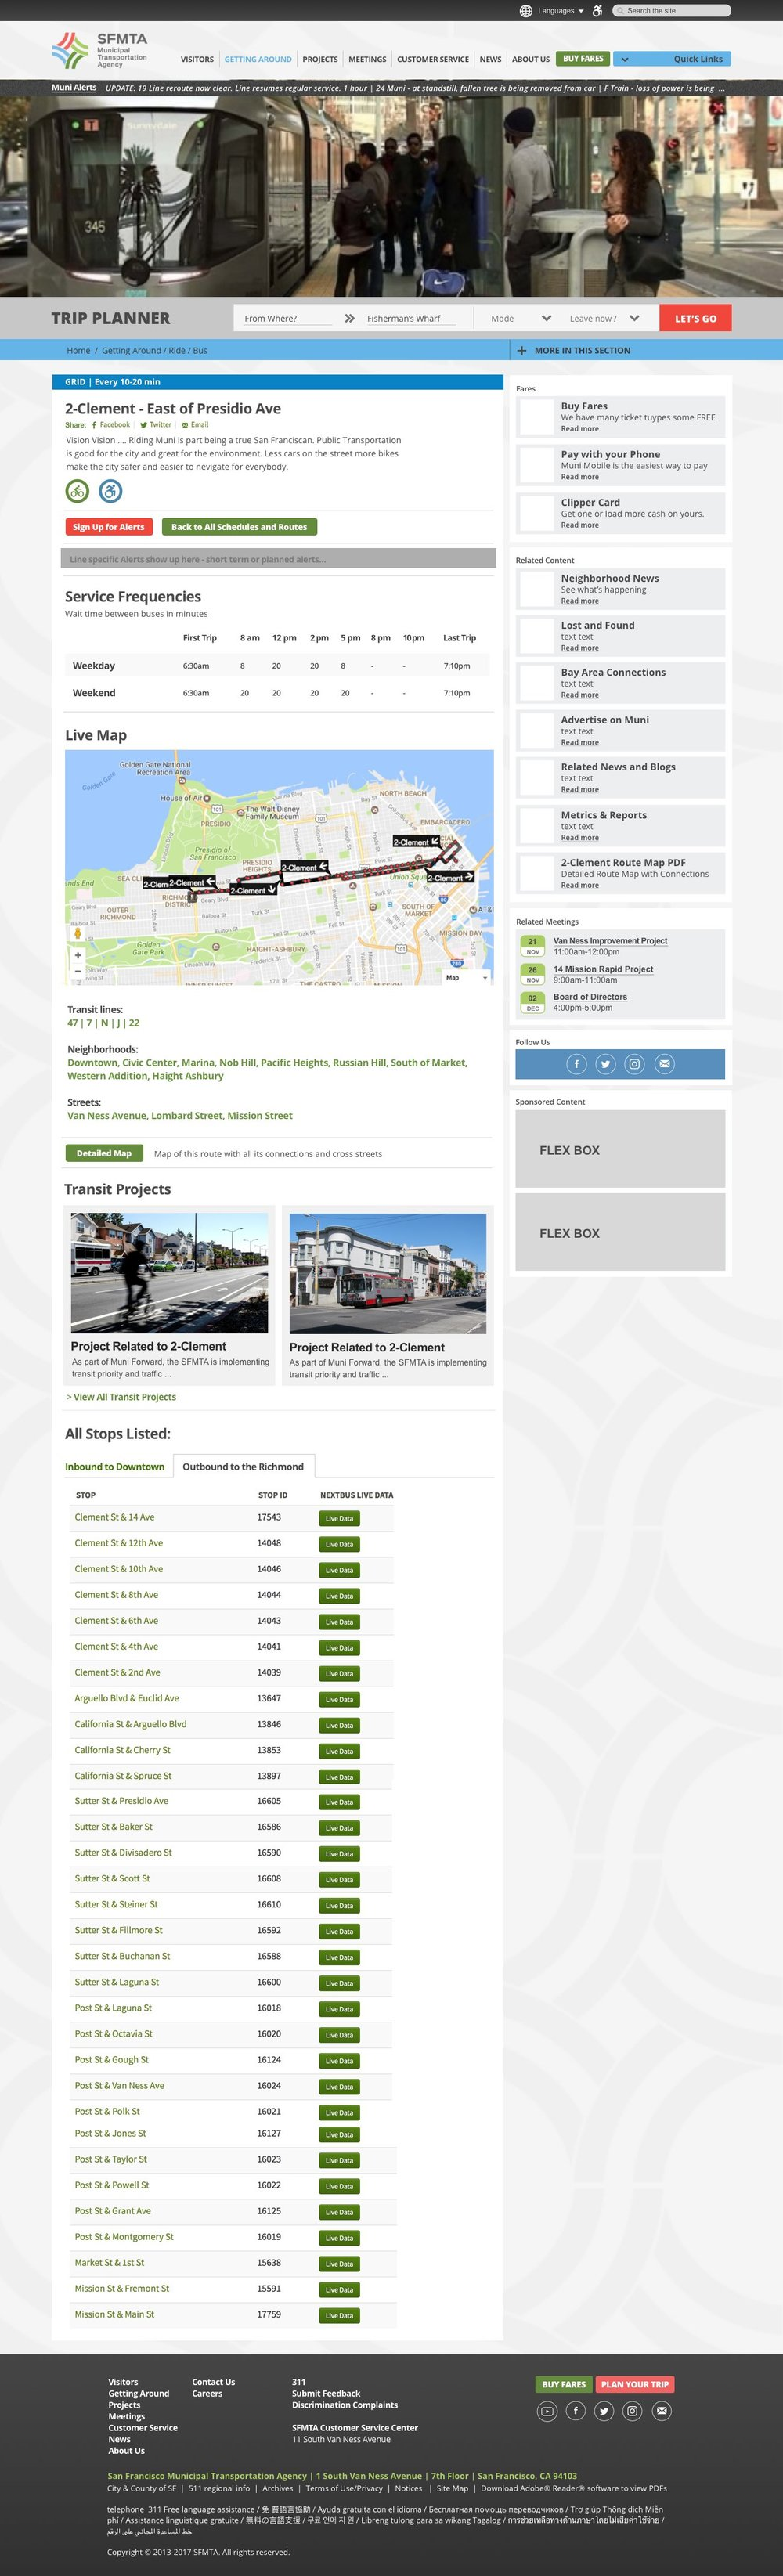 inkedesign-sfmta-website-transit.jpg